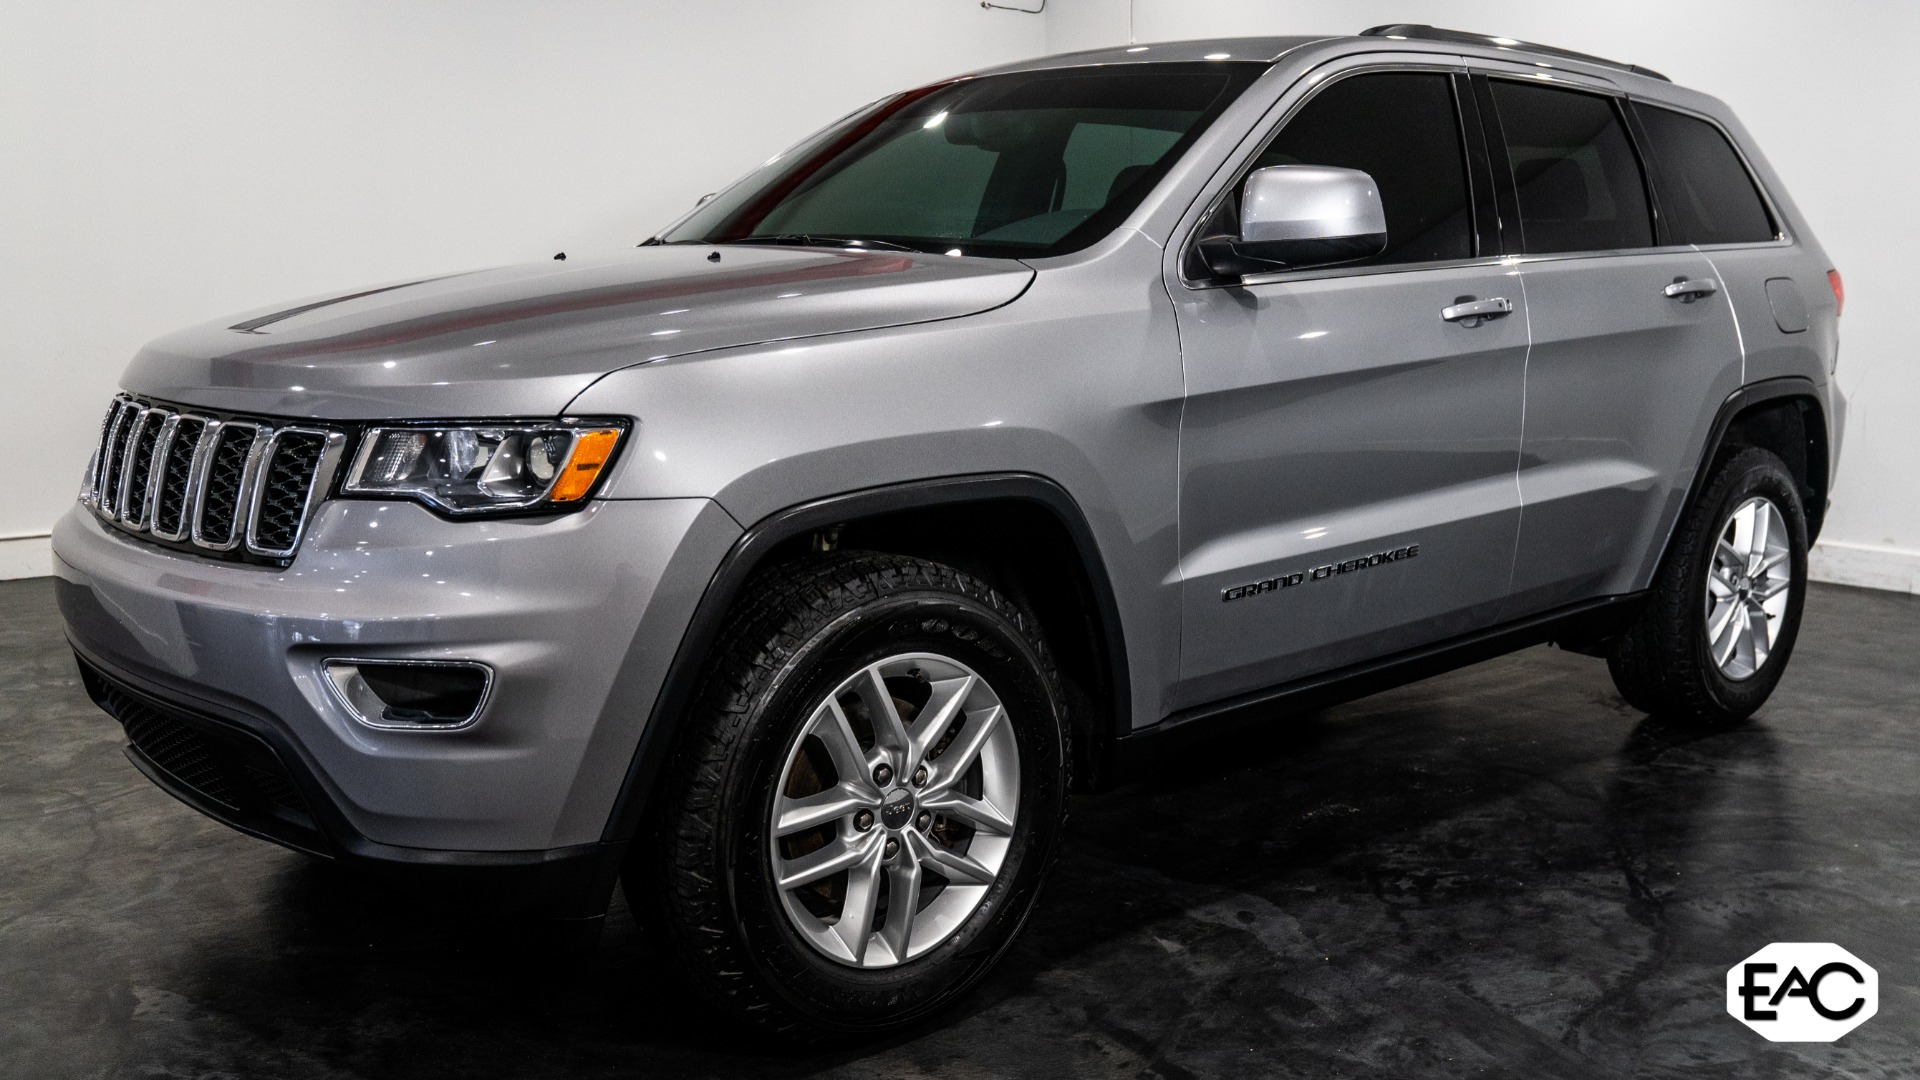 Used 2018 Jeep Grand Cherokee Laredo for sale Sold at Empire Auto Collection in Warren MI 48091 1